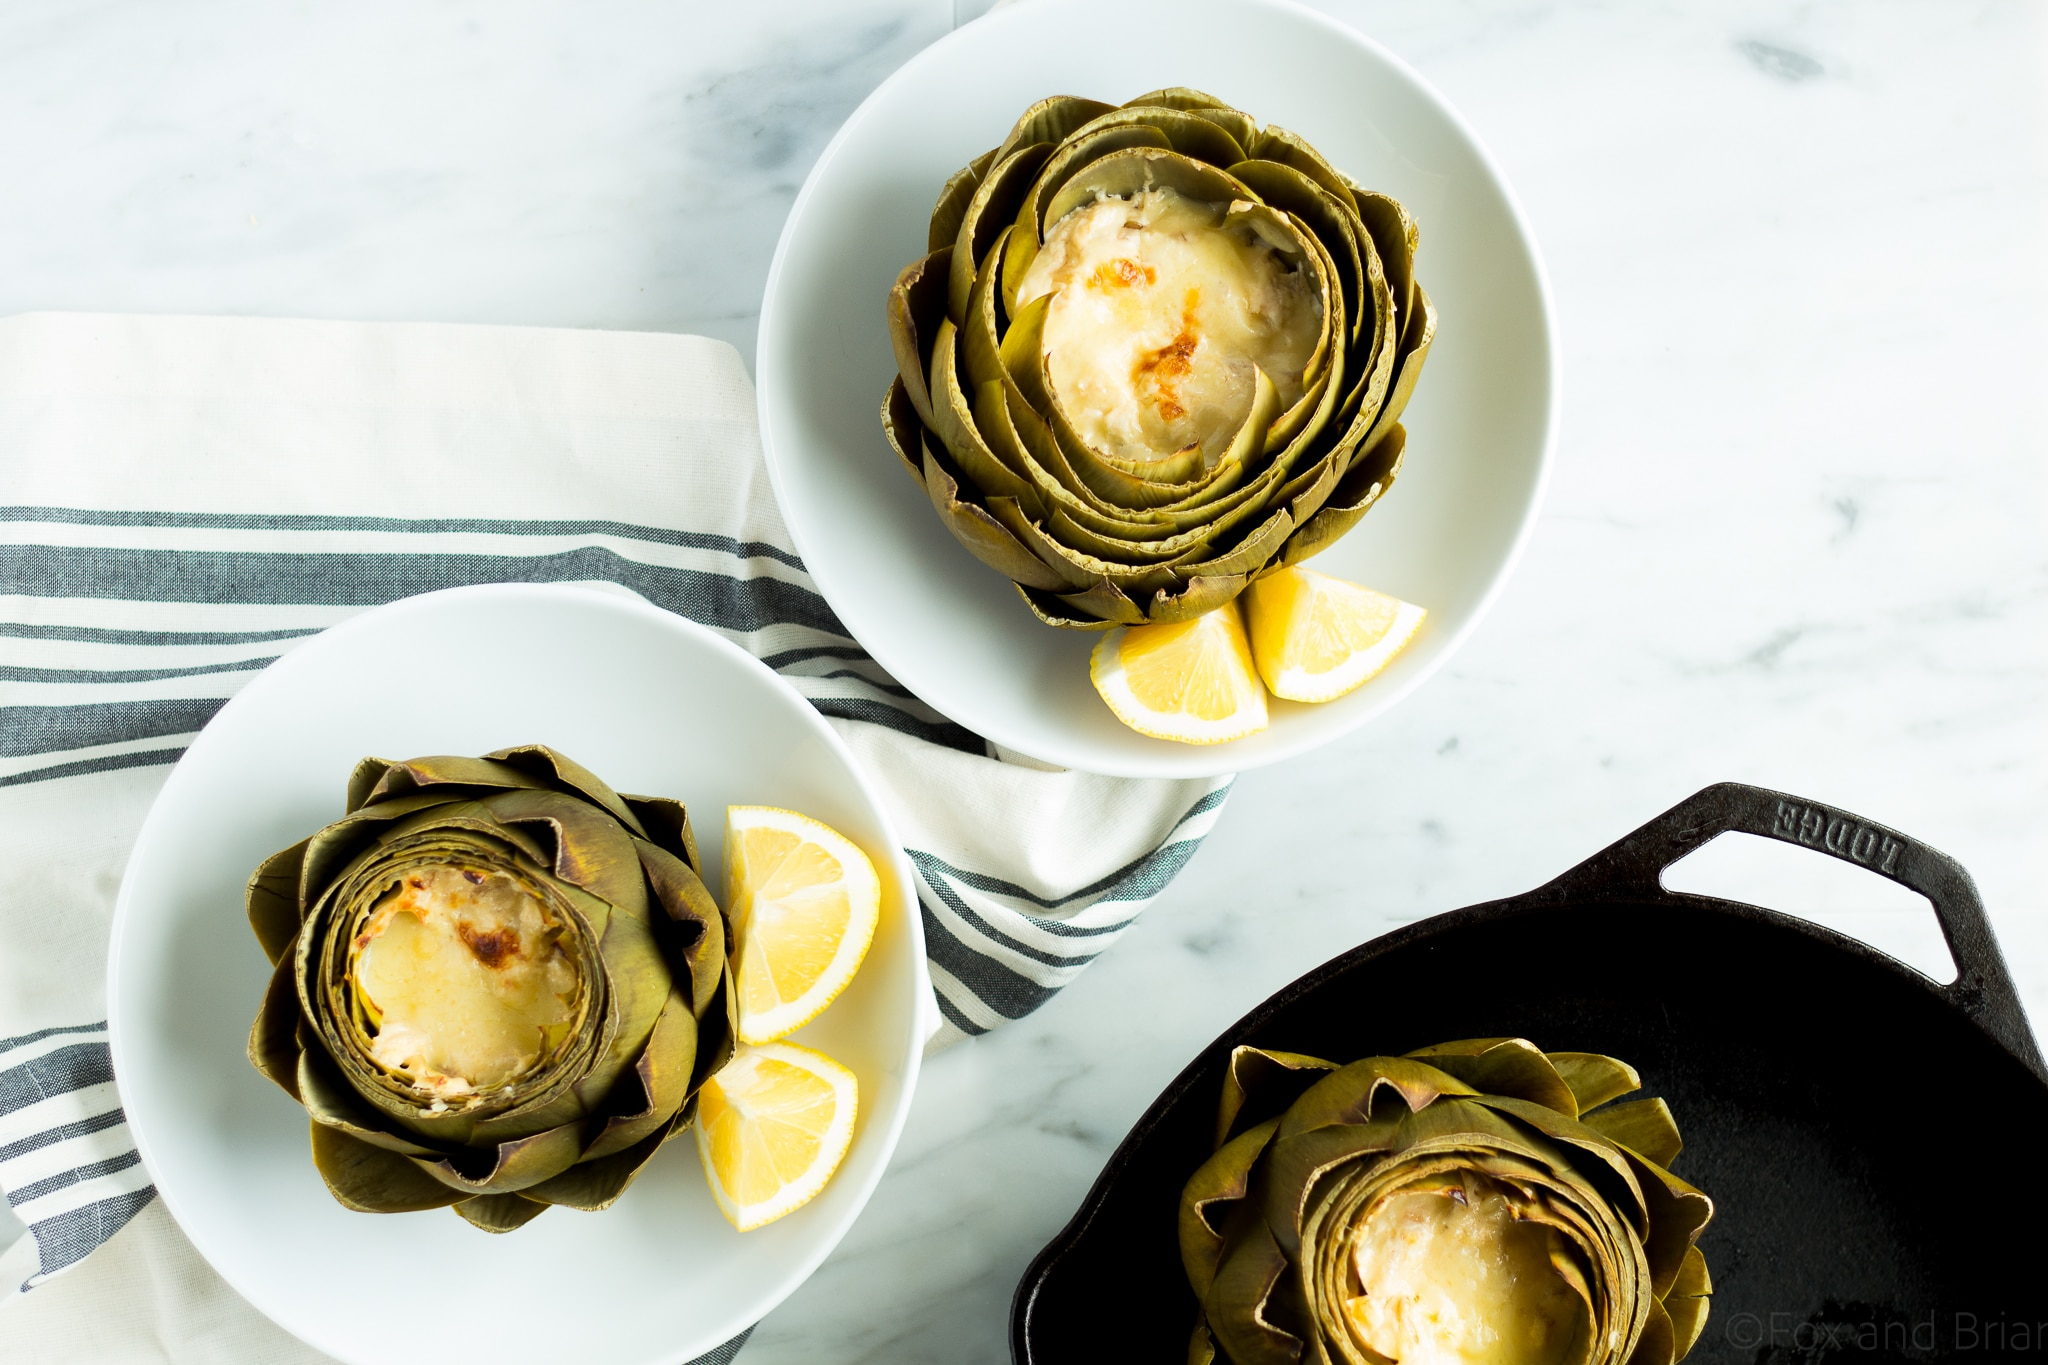 These Hot Crab Dip Stuffed Artichokes deserves a spot on your holiday or party table! Artichokes stuffed with a rich and cheesy crab dip, then baked until melty. You can use the artichoke leaves to scoop the dip!